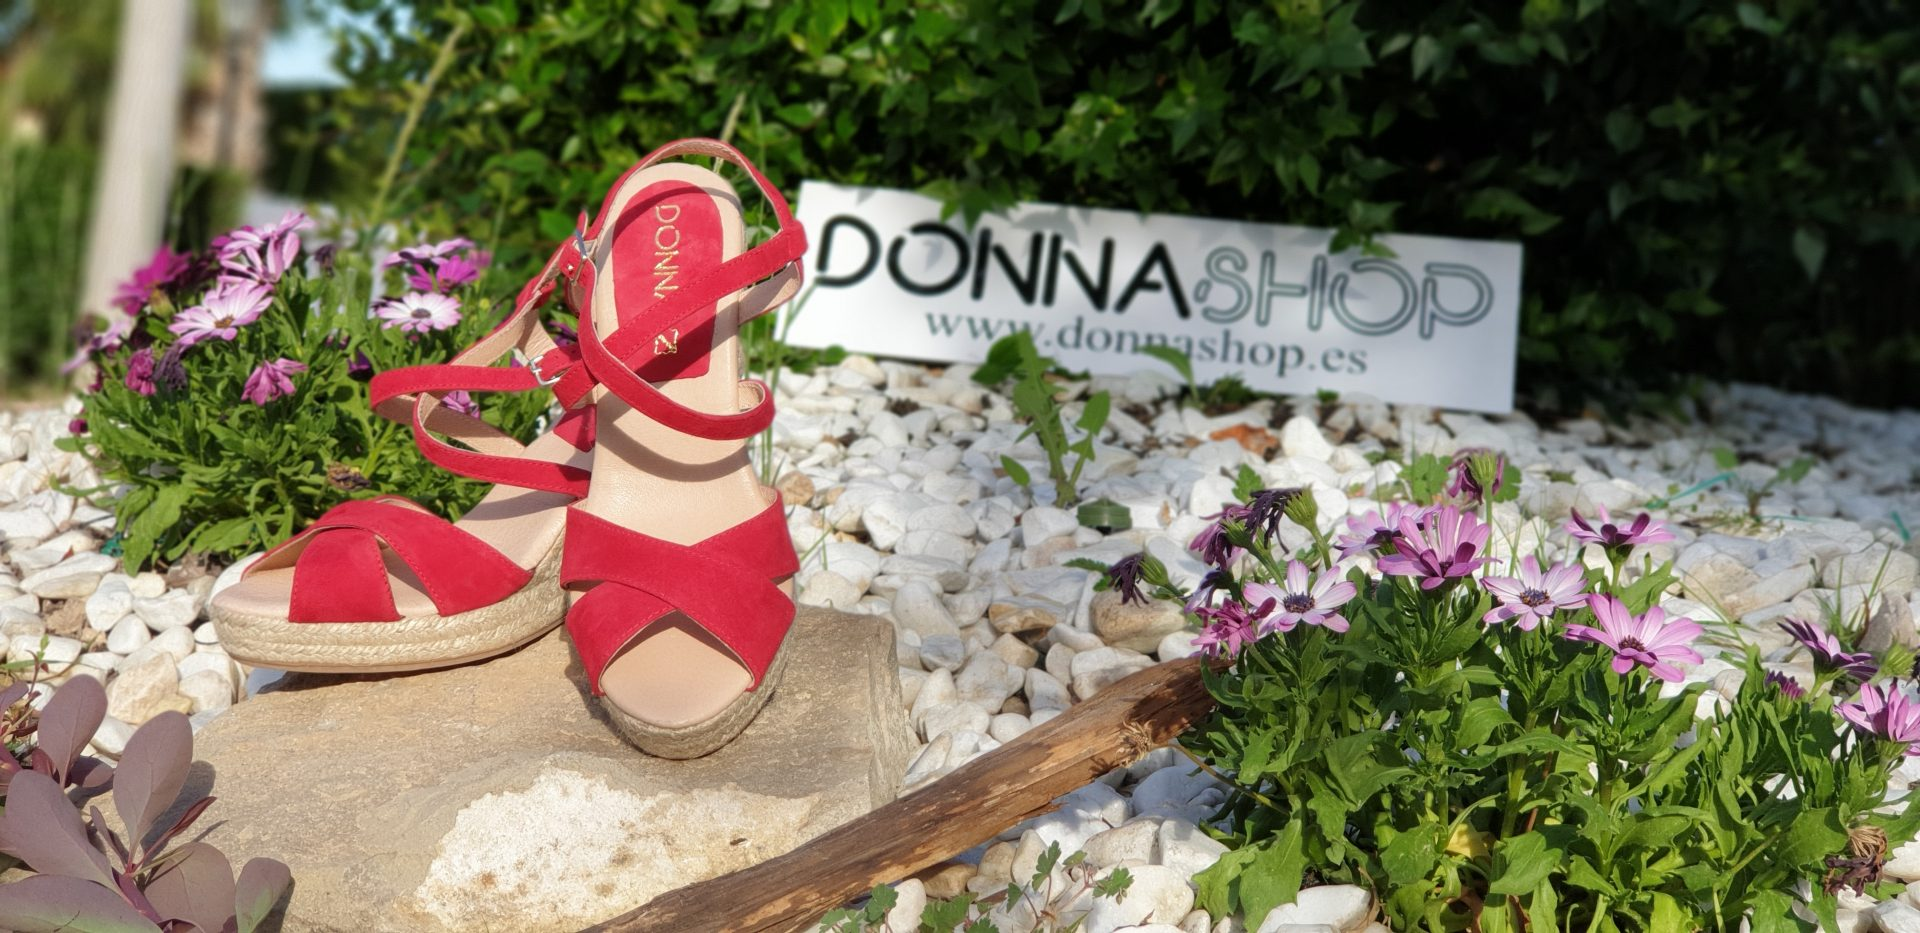 donnashop home